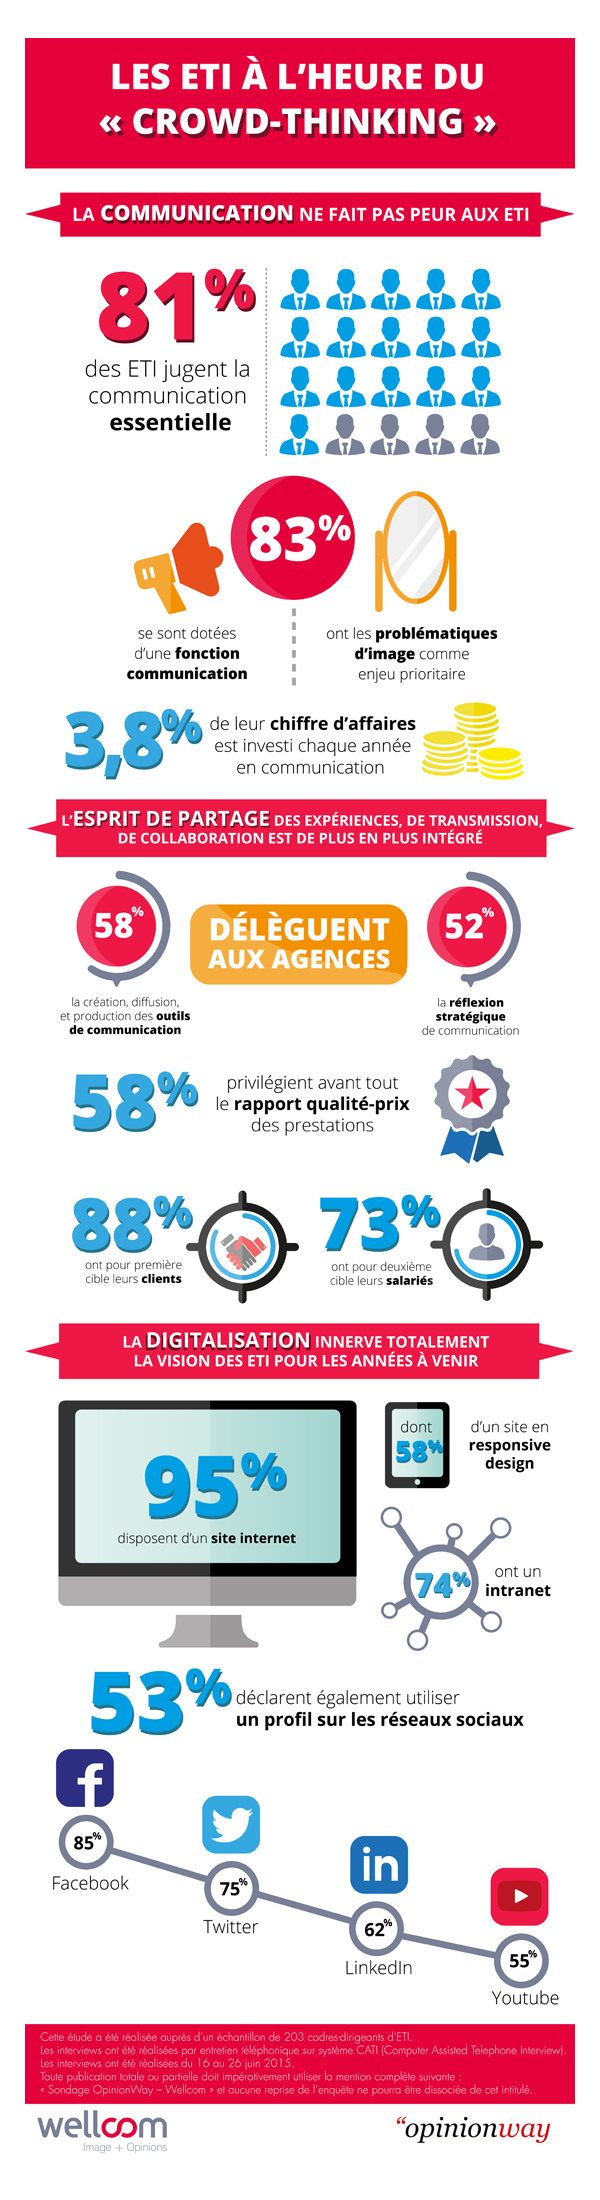 Infographie communication ETI - Wellcom Opinion Way Culture RP